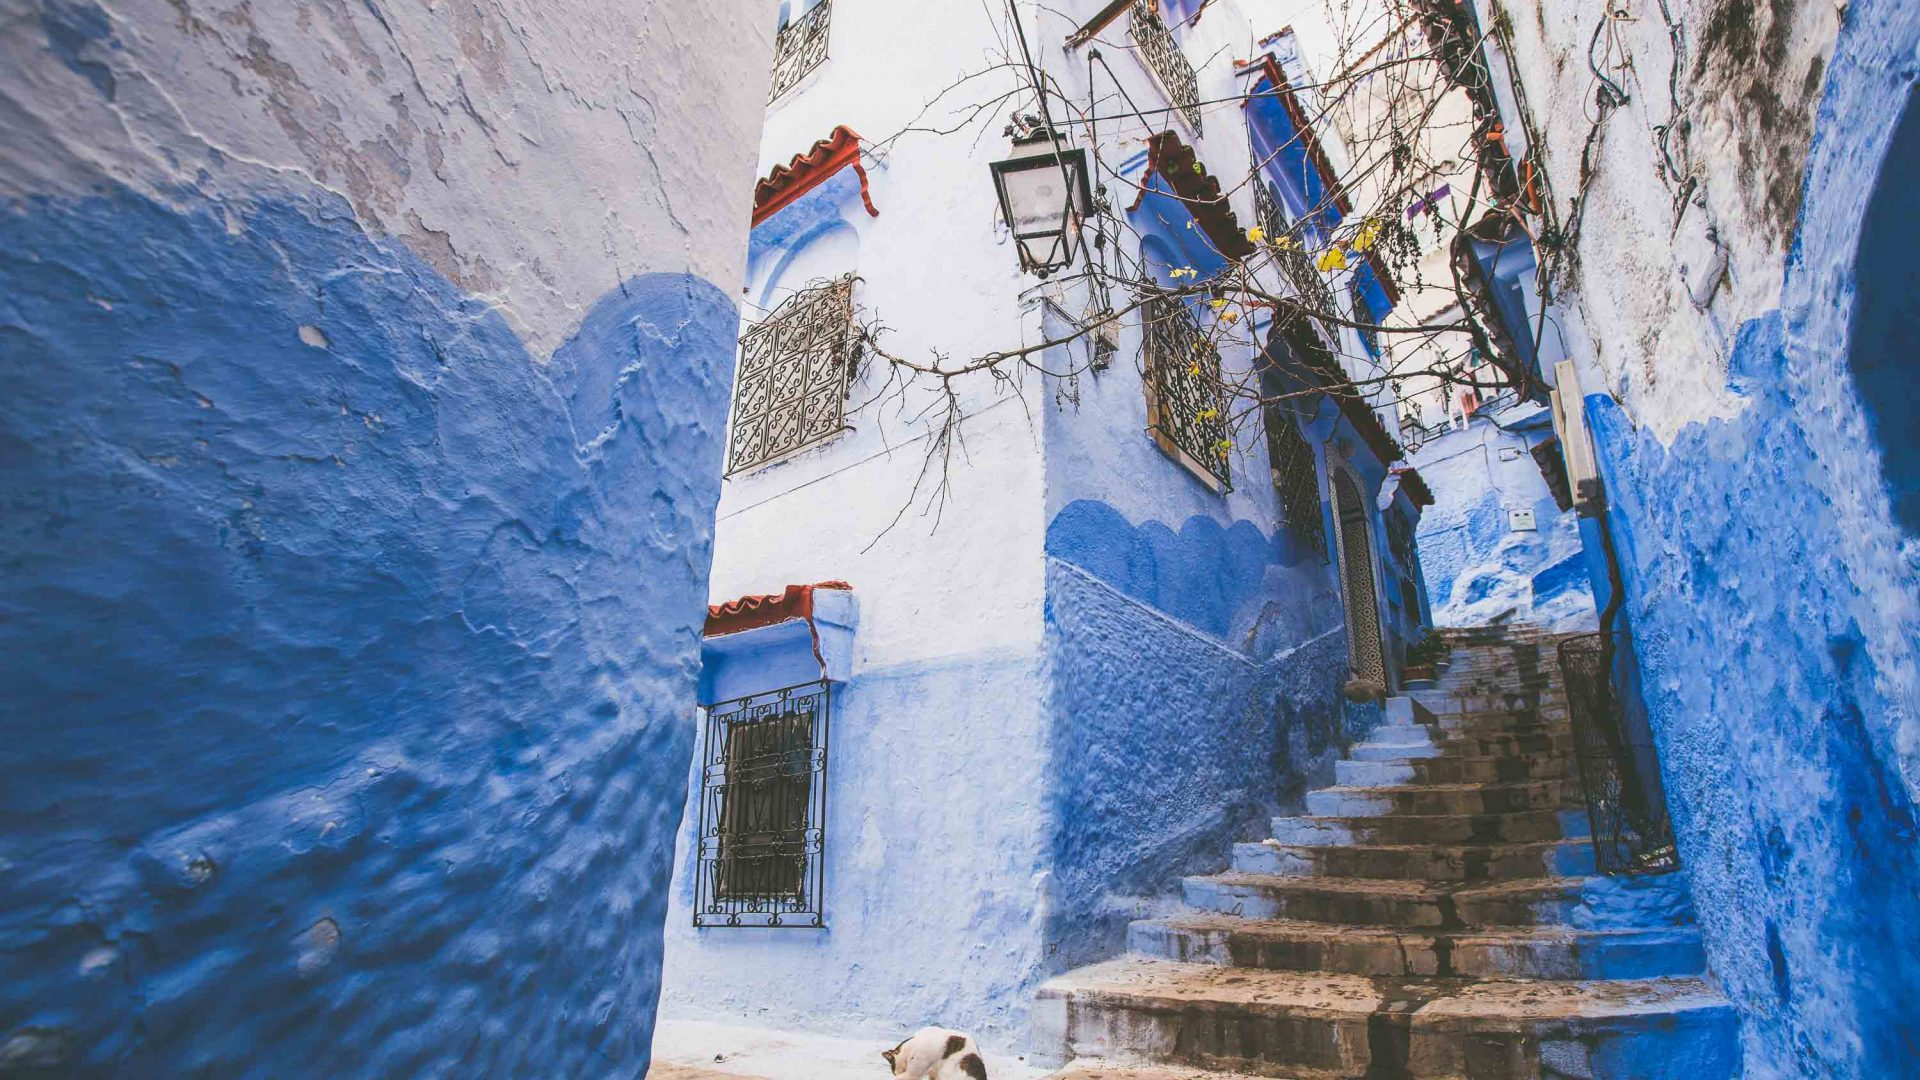 The vibrant blues of Chefchouen, Morocco.